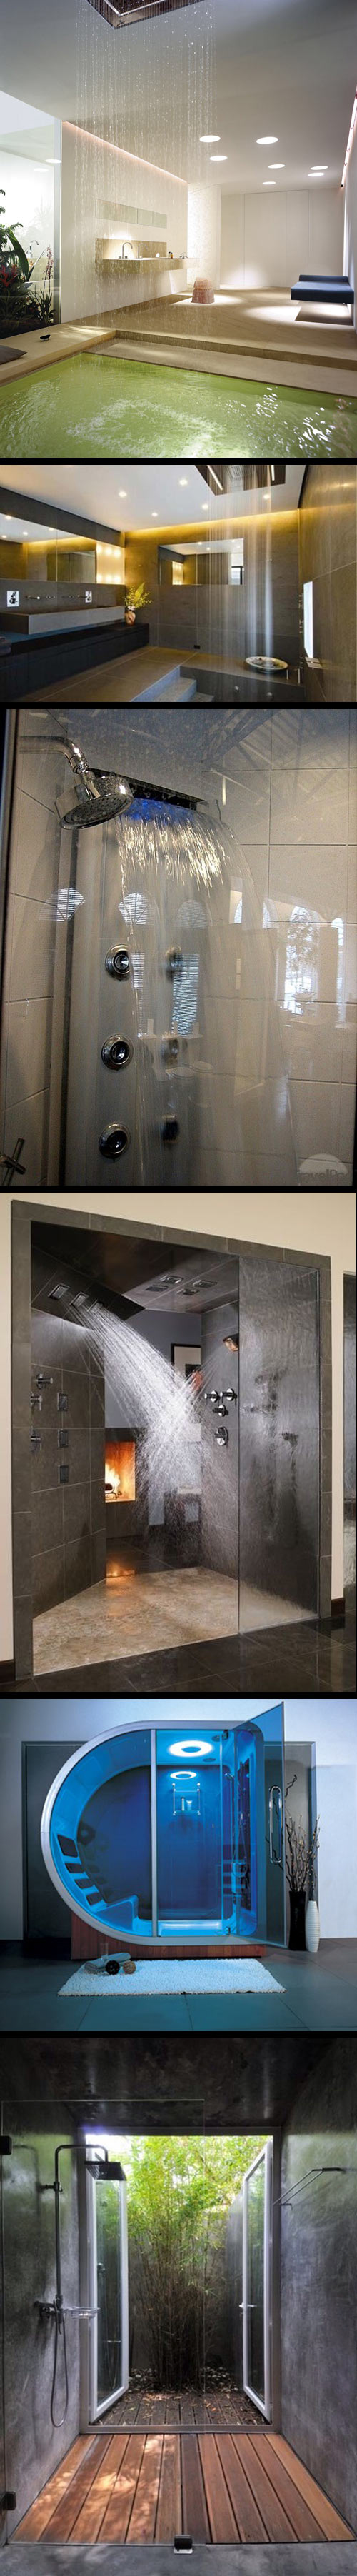 cool-different-types-shower-original